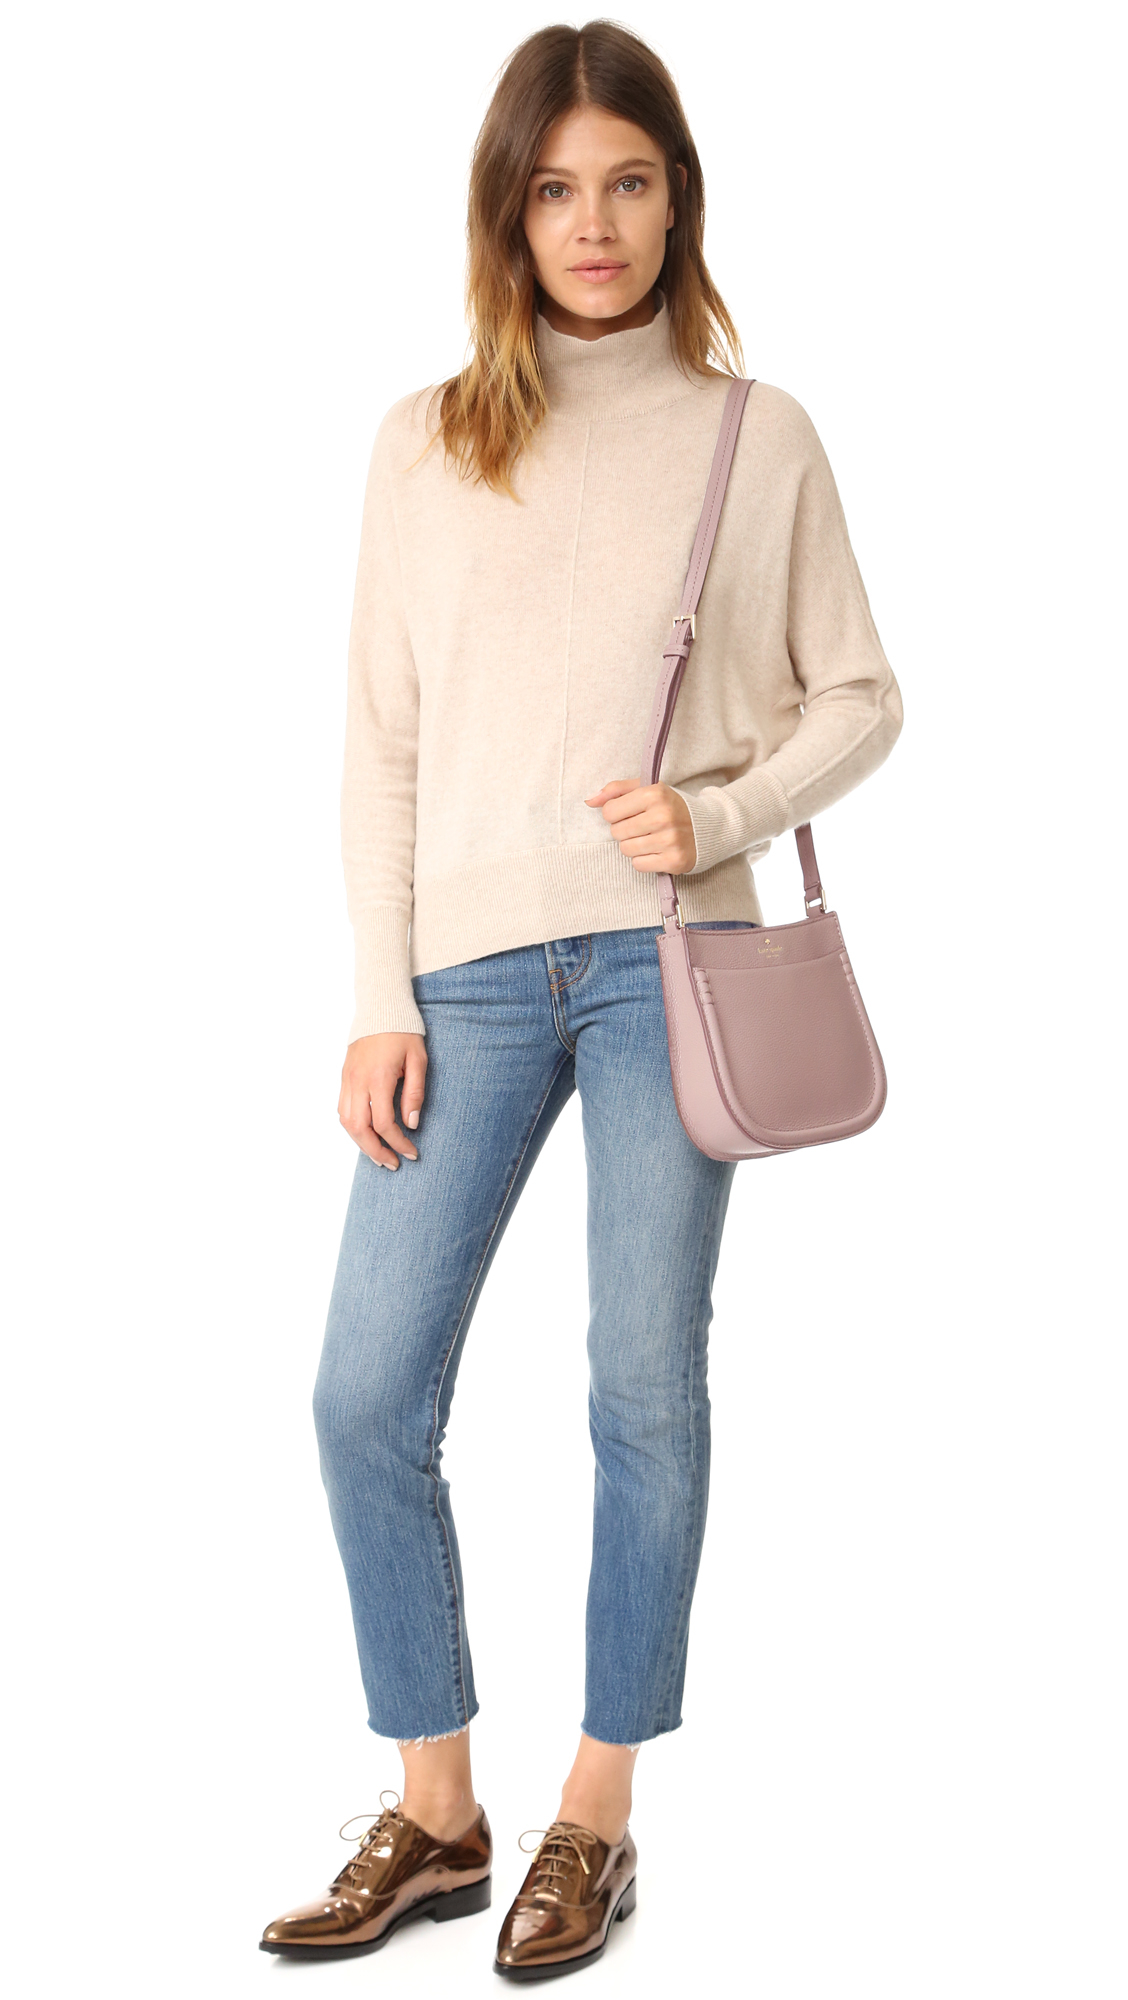 Kate Spade Leather Small Hemsley Cross Body Bag in Blue